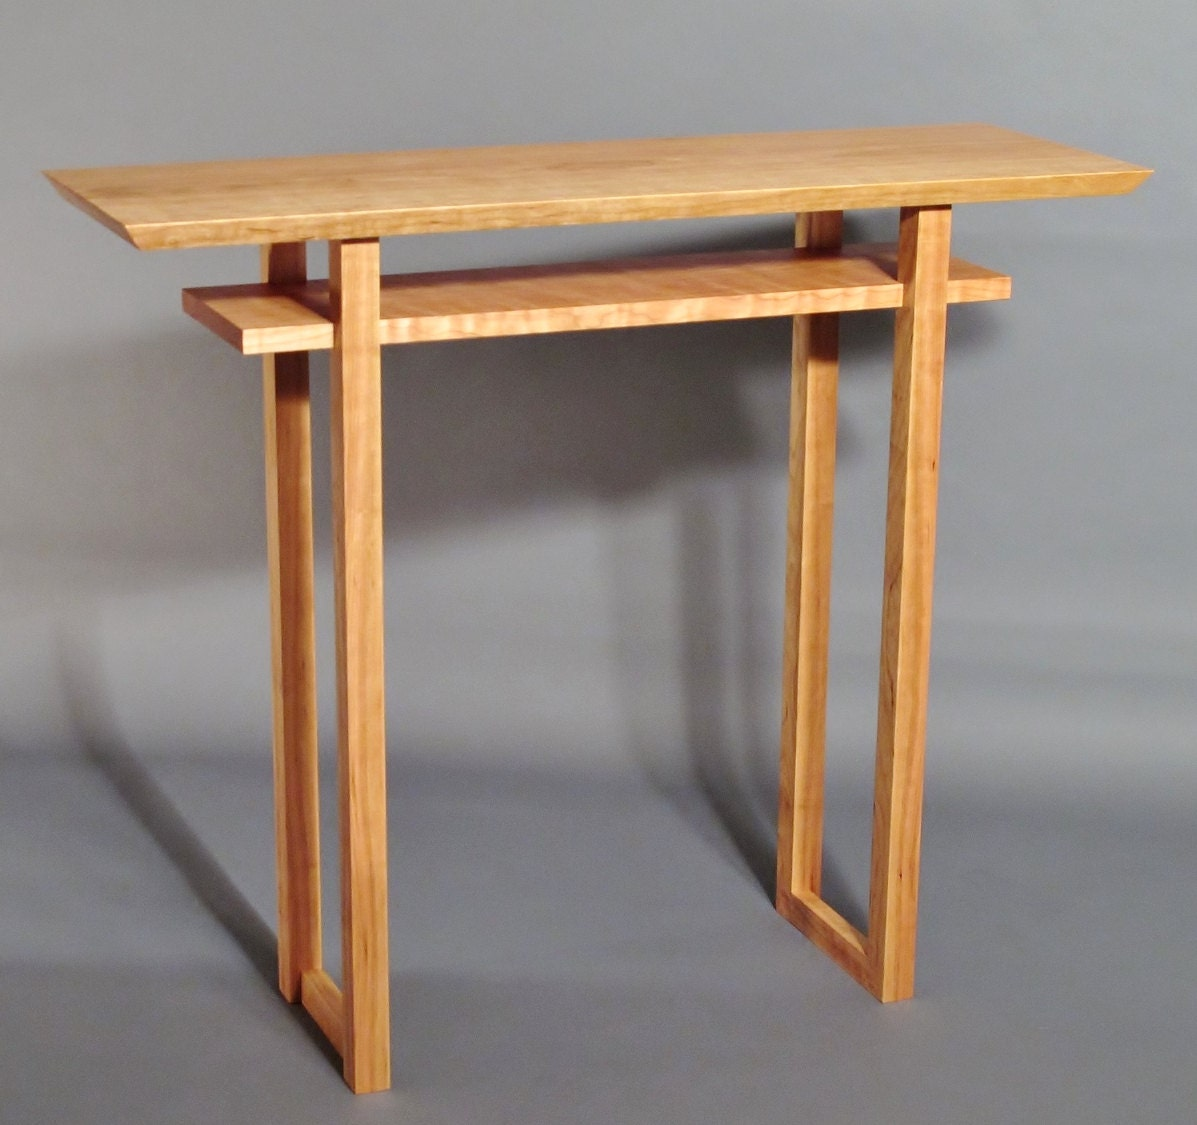 Wooden Hall Tables narrow side table: handmade custom wood furniture minimalist